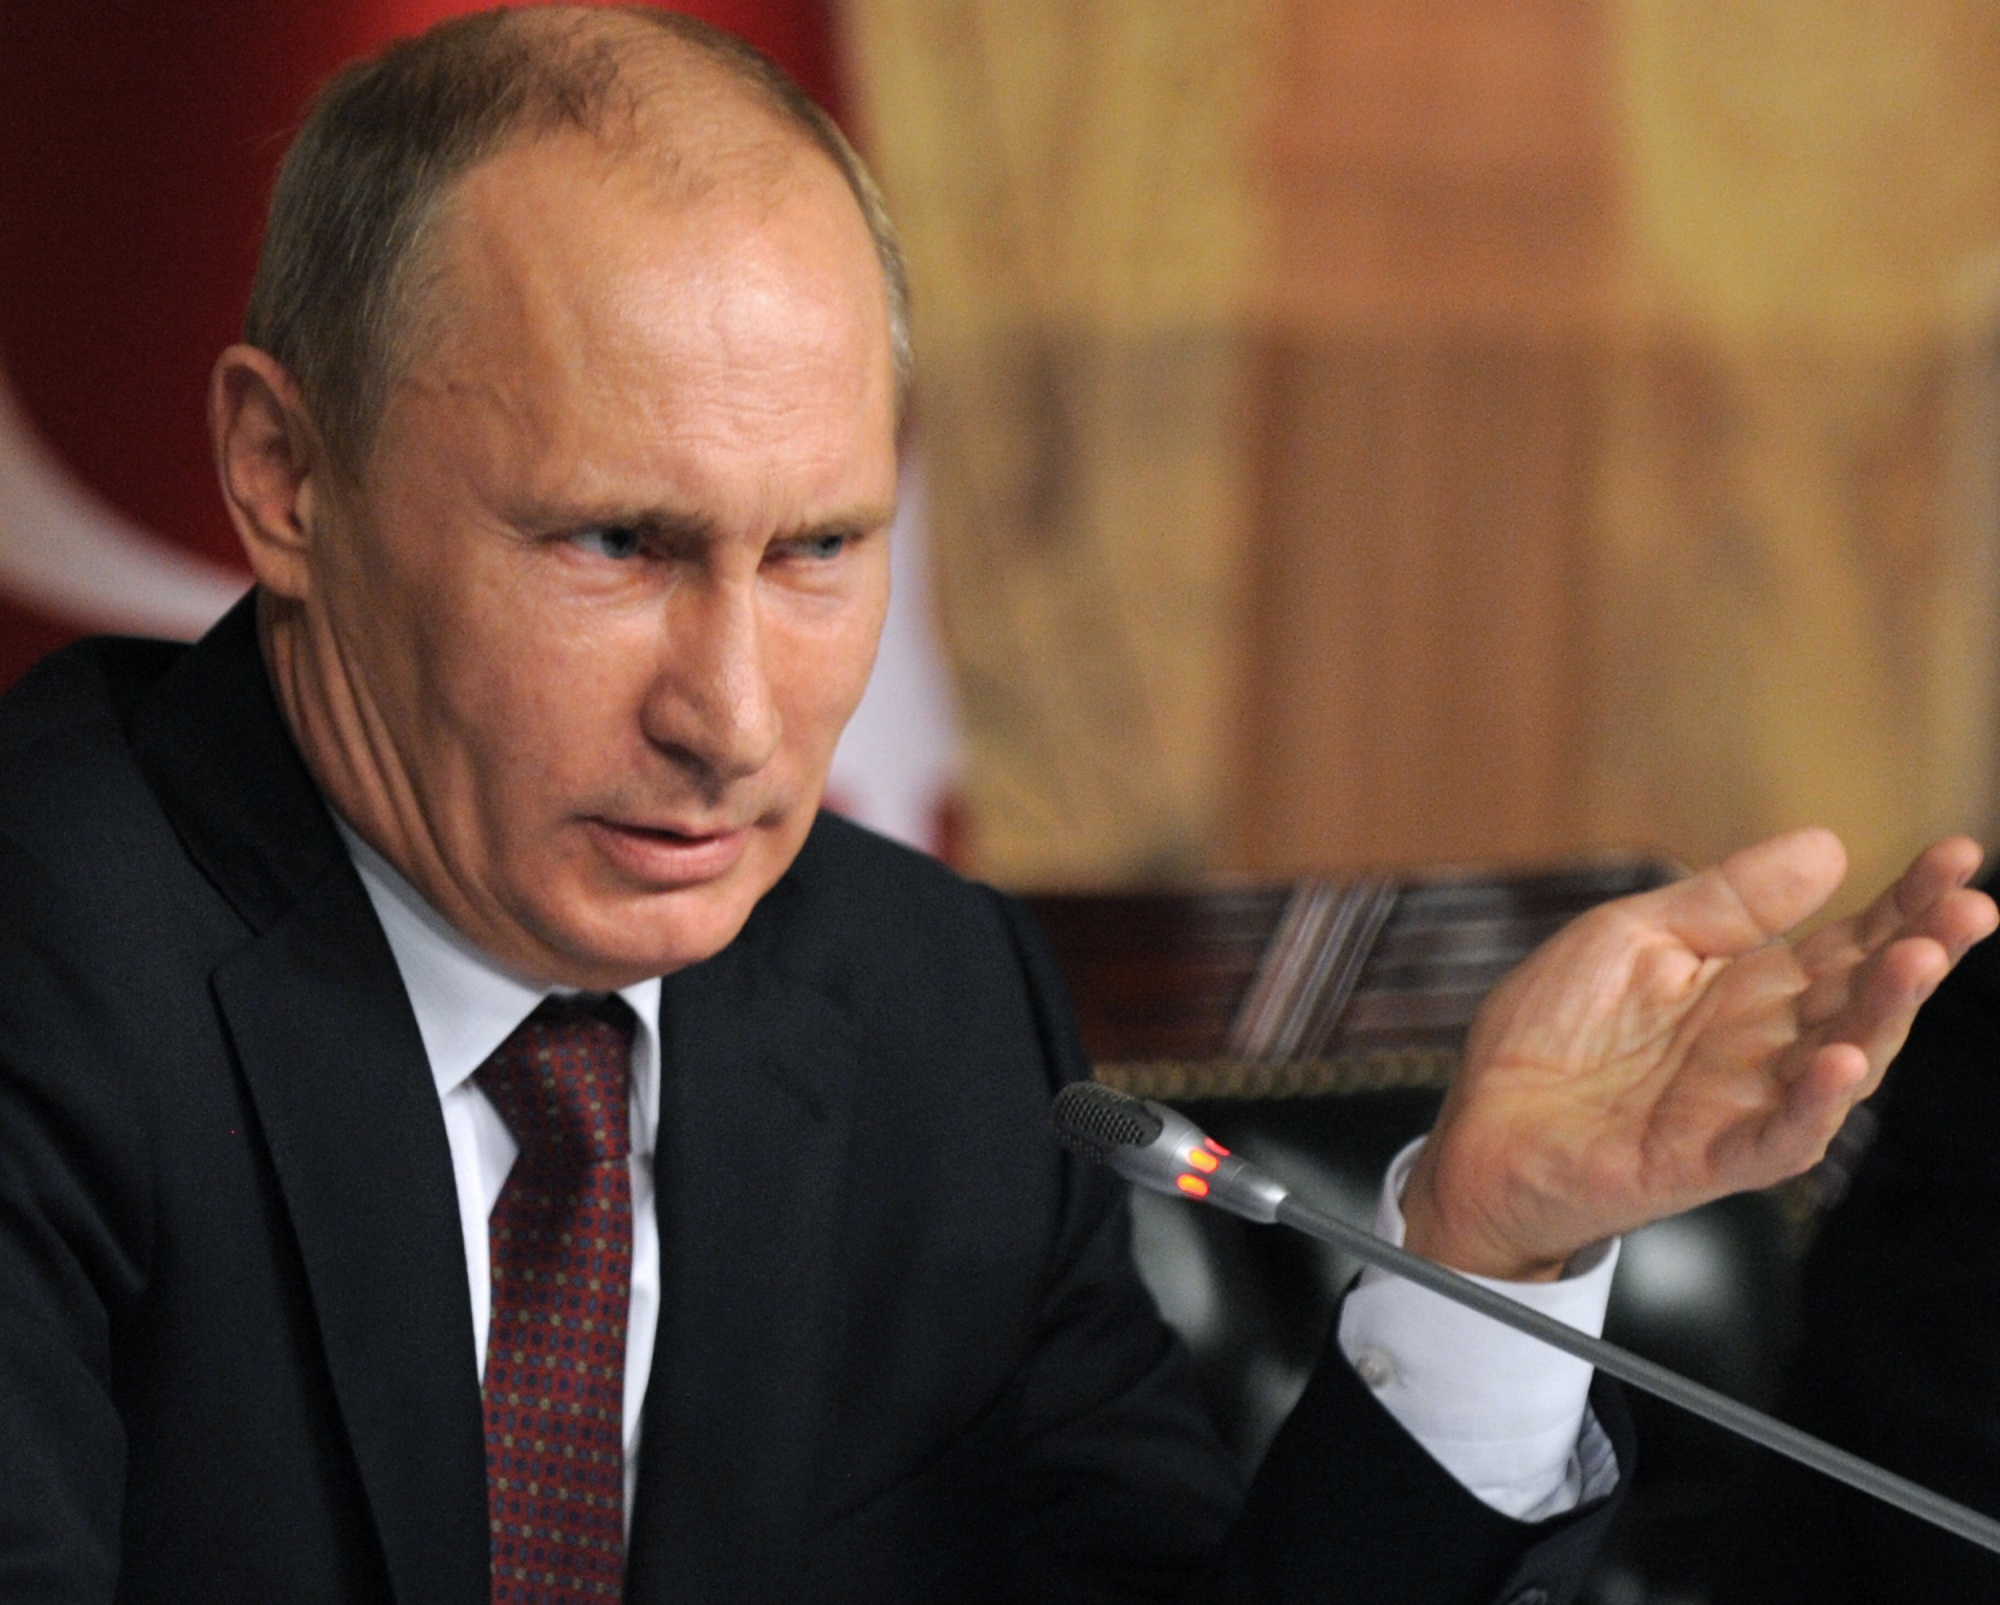 Putin Lives in a World Without Rules